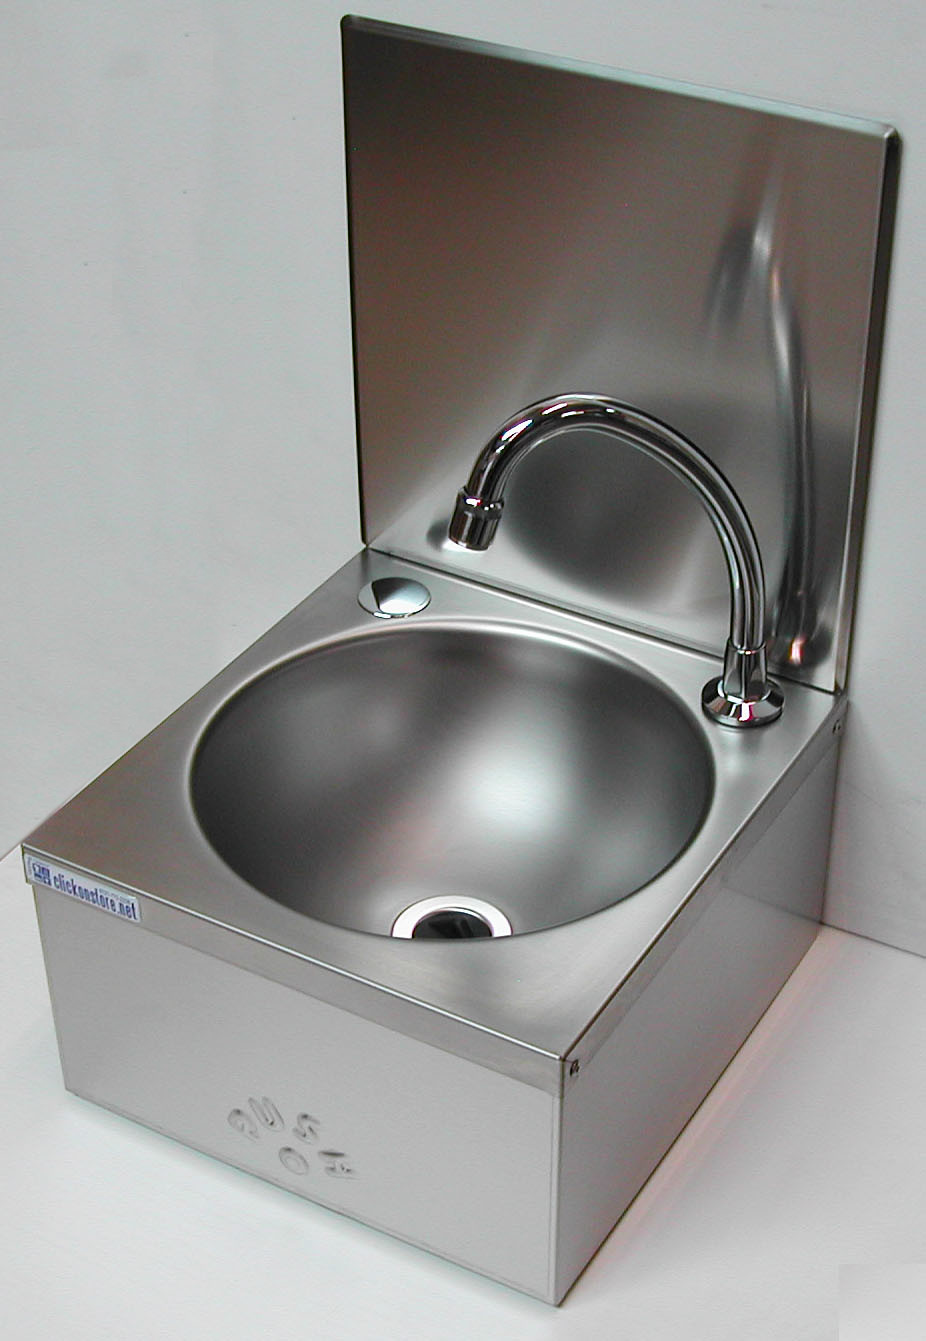 Knee Operated Sink Handwash with splash-back. Complete Kit.